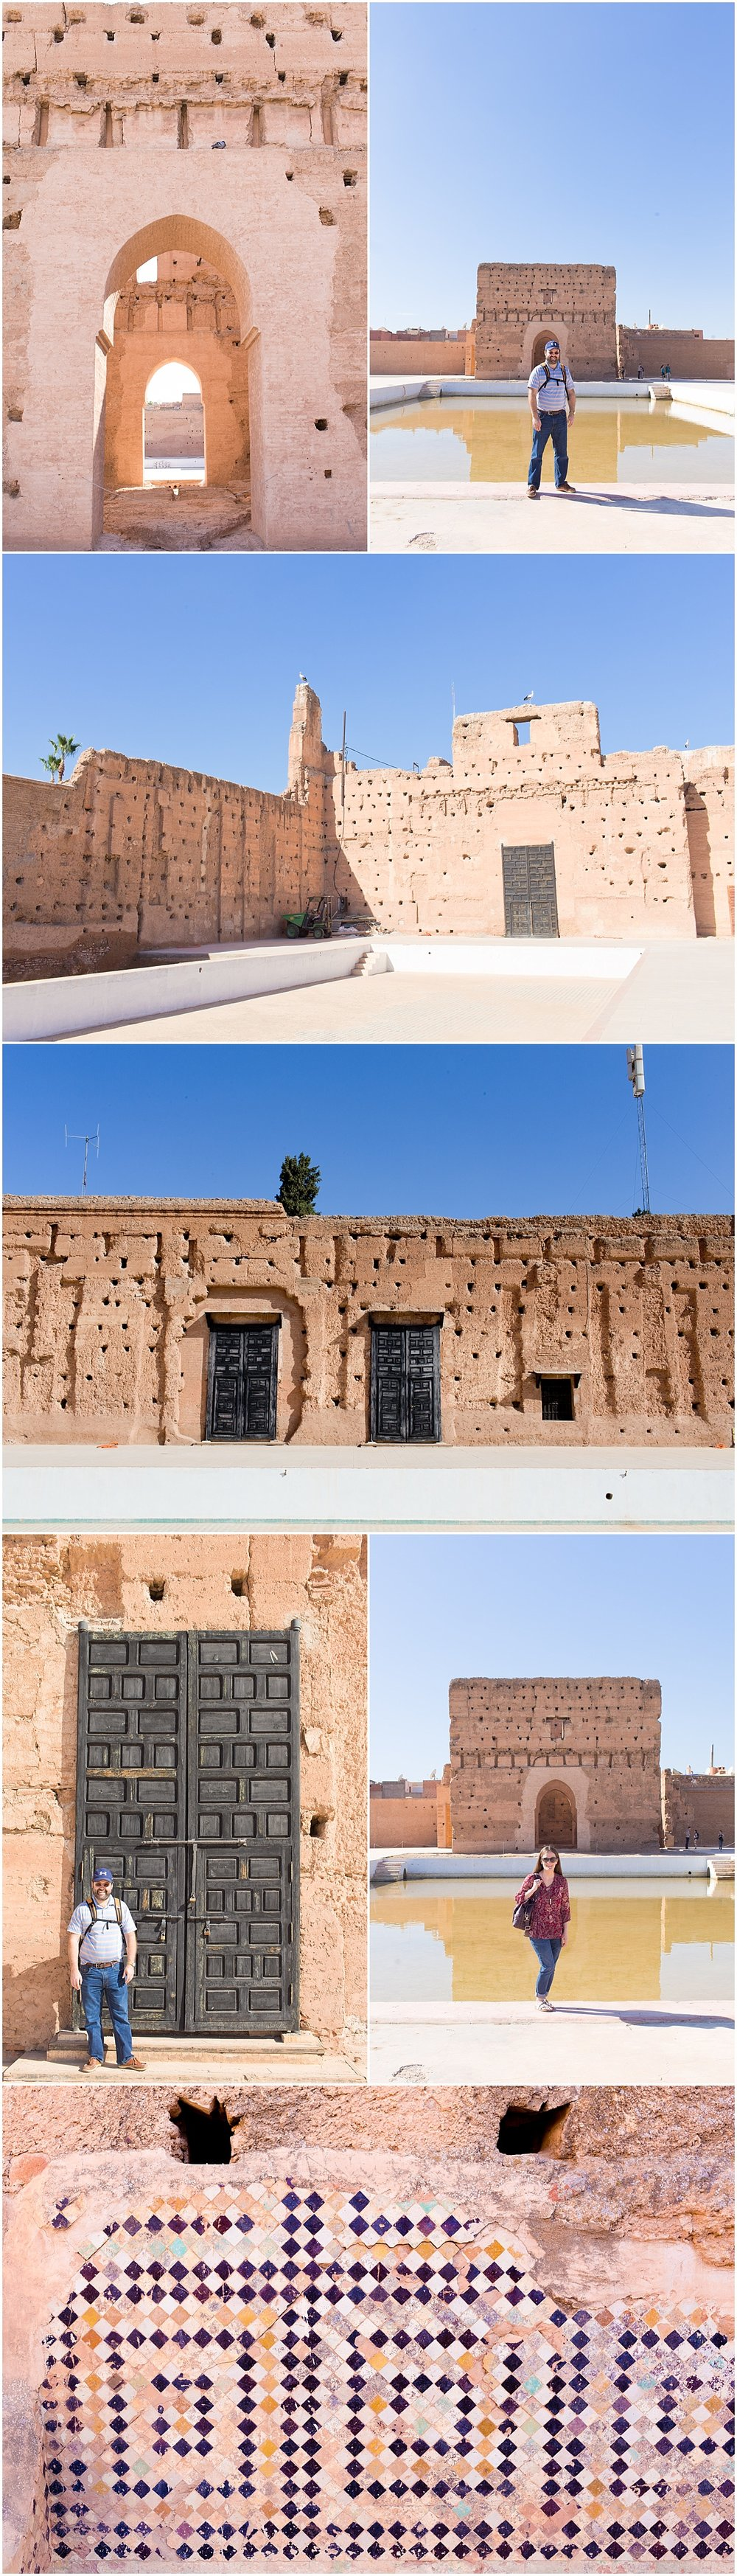 Badi Palace ancient structure in Marrakech, Morocco